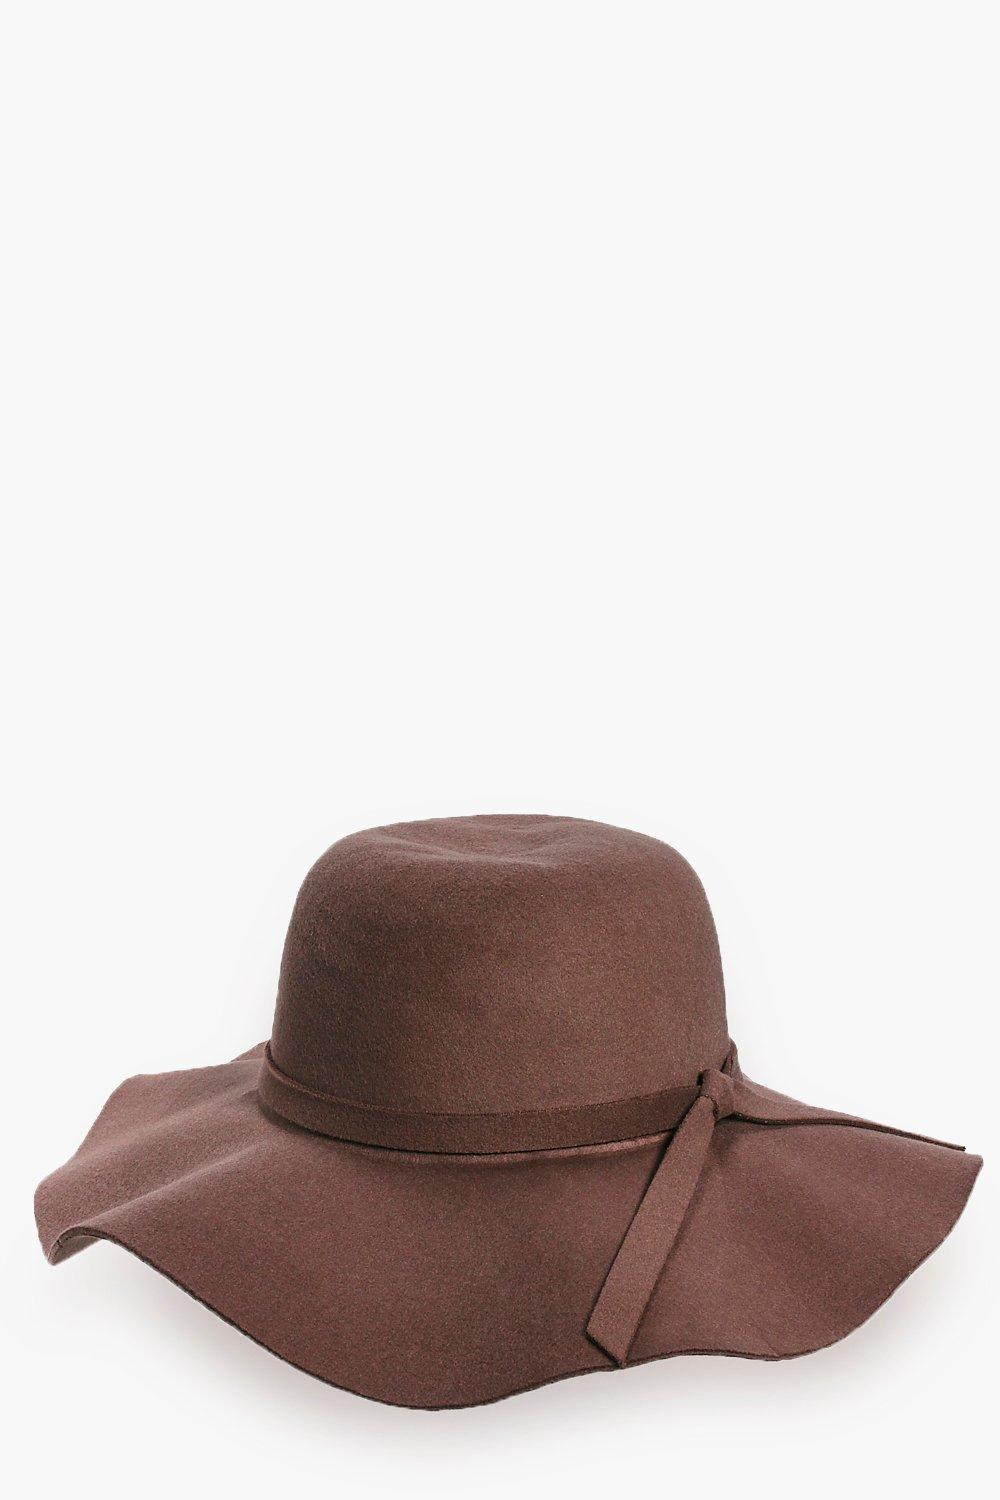 Poppy Beige Bow Wool Look Fedora